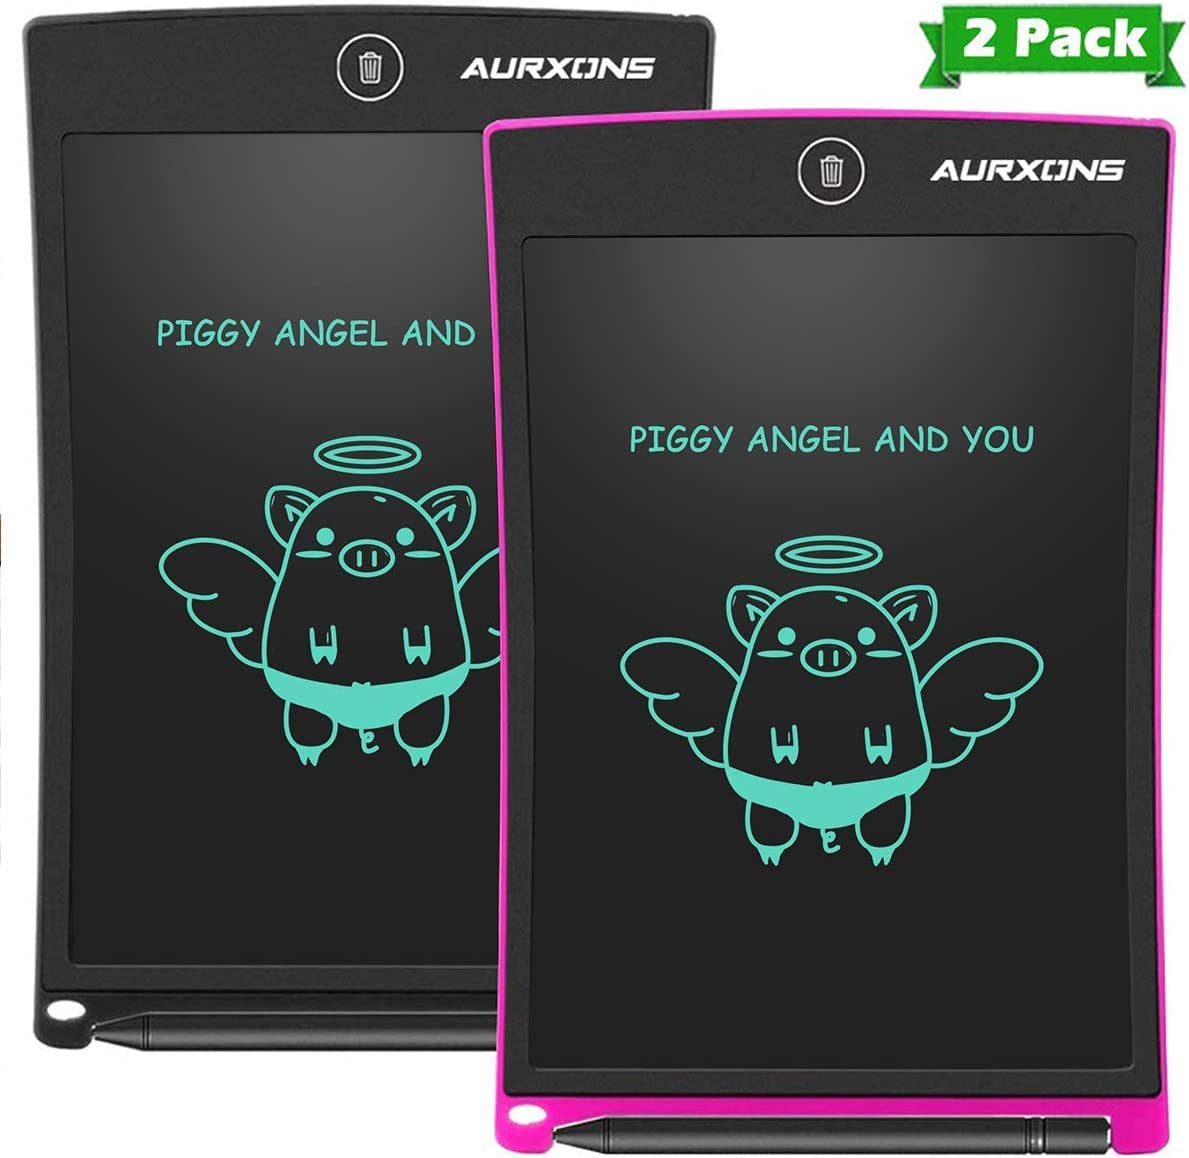 LCD Writing Tablet Electronic Writing Drawing Doodle Board Erasable AURXONS 8.5-Inch Handwriting Paper Drawing Tablet for Kids Adults at Home School Office Black